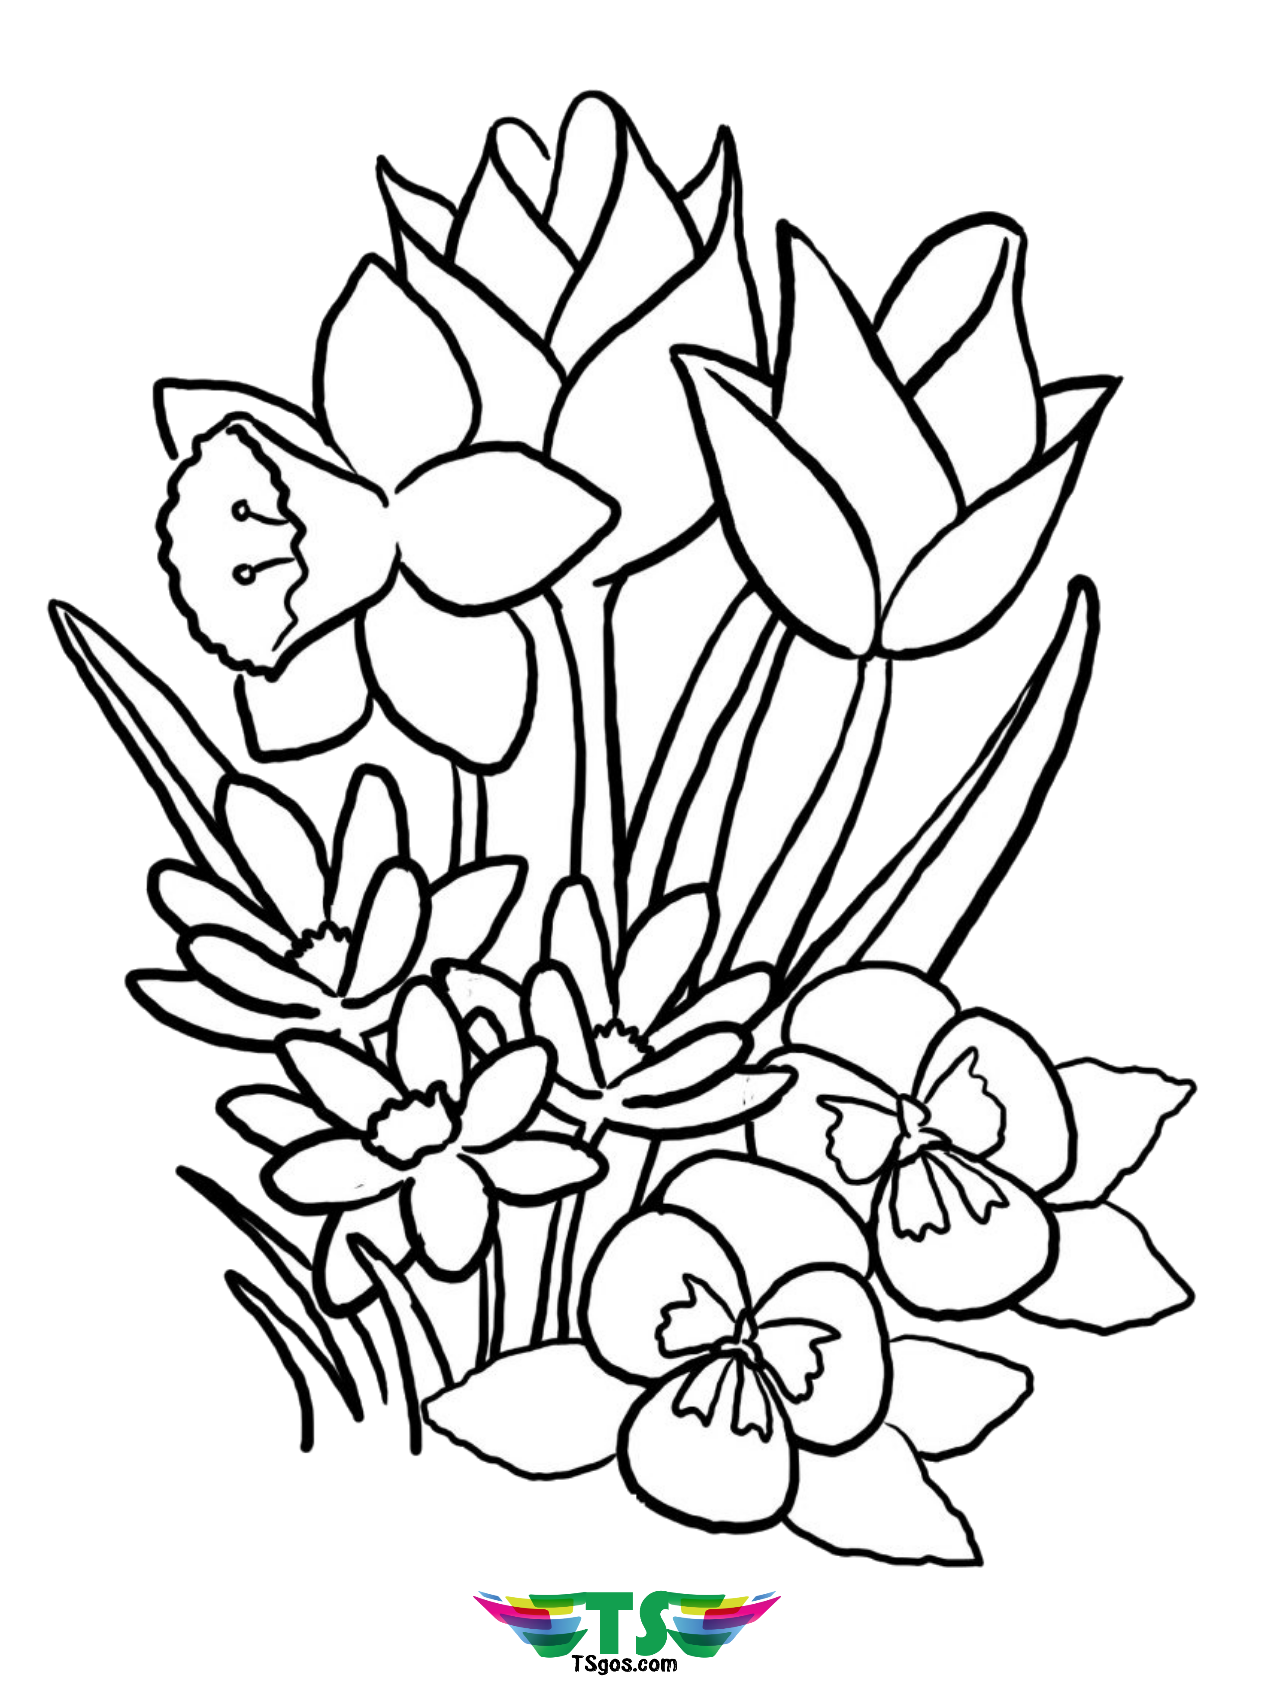 Free download to print beautiful spring flower coloring ...